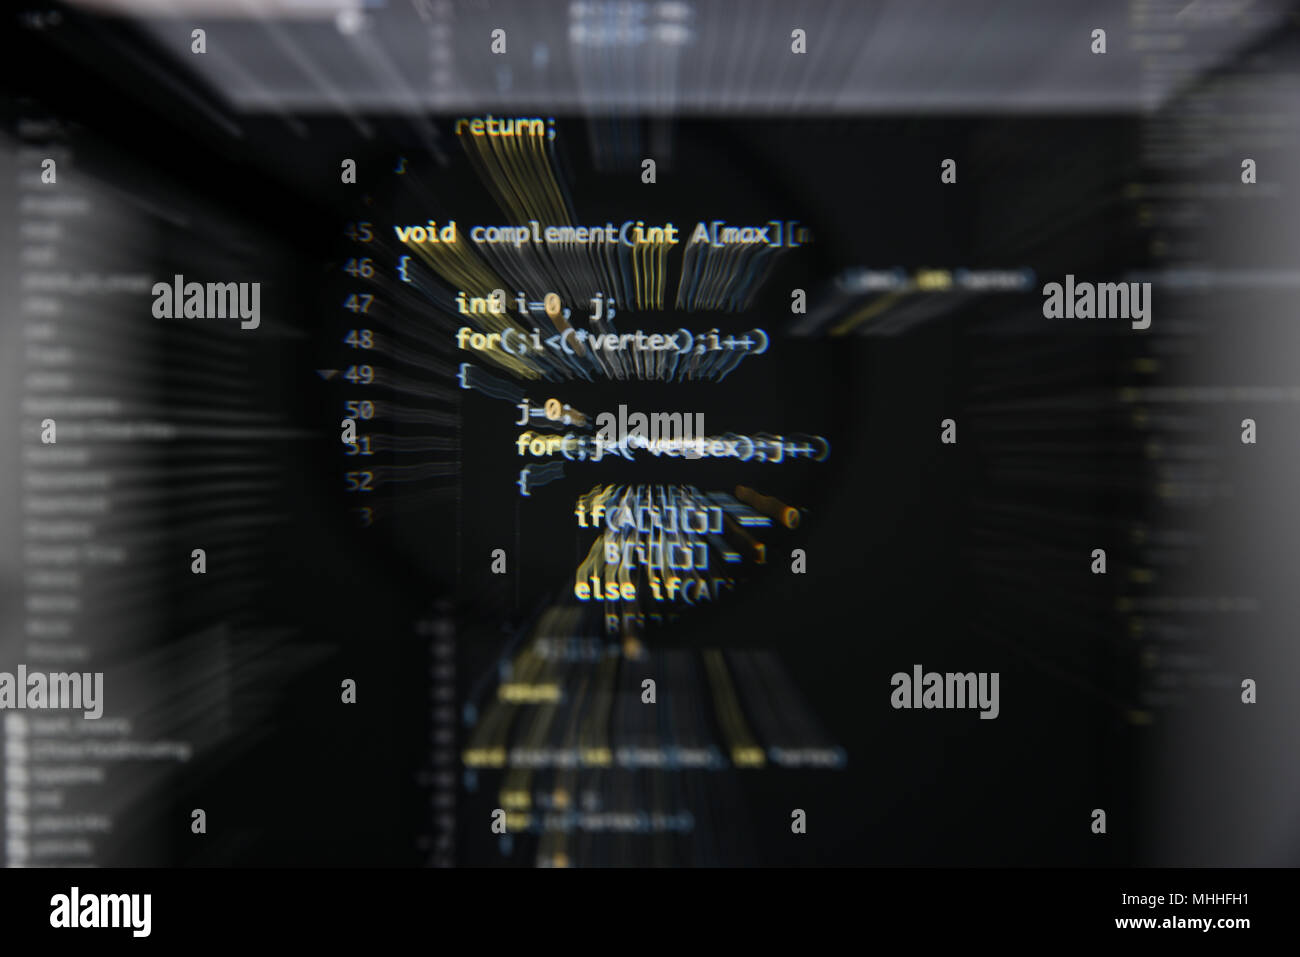 Real c / c++ code developing screen. Programing workflow abstract algorithm concept. Lines of c / c++ code visible under magnifying lens with moviment - Stock Image